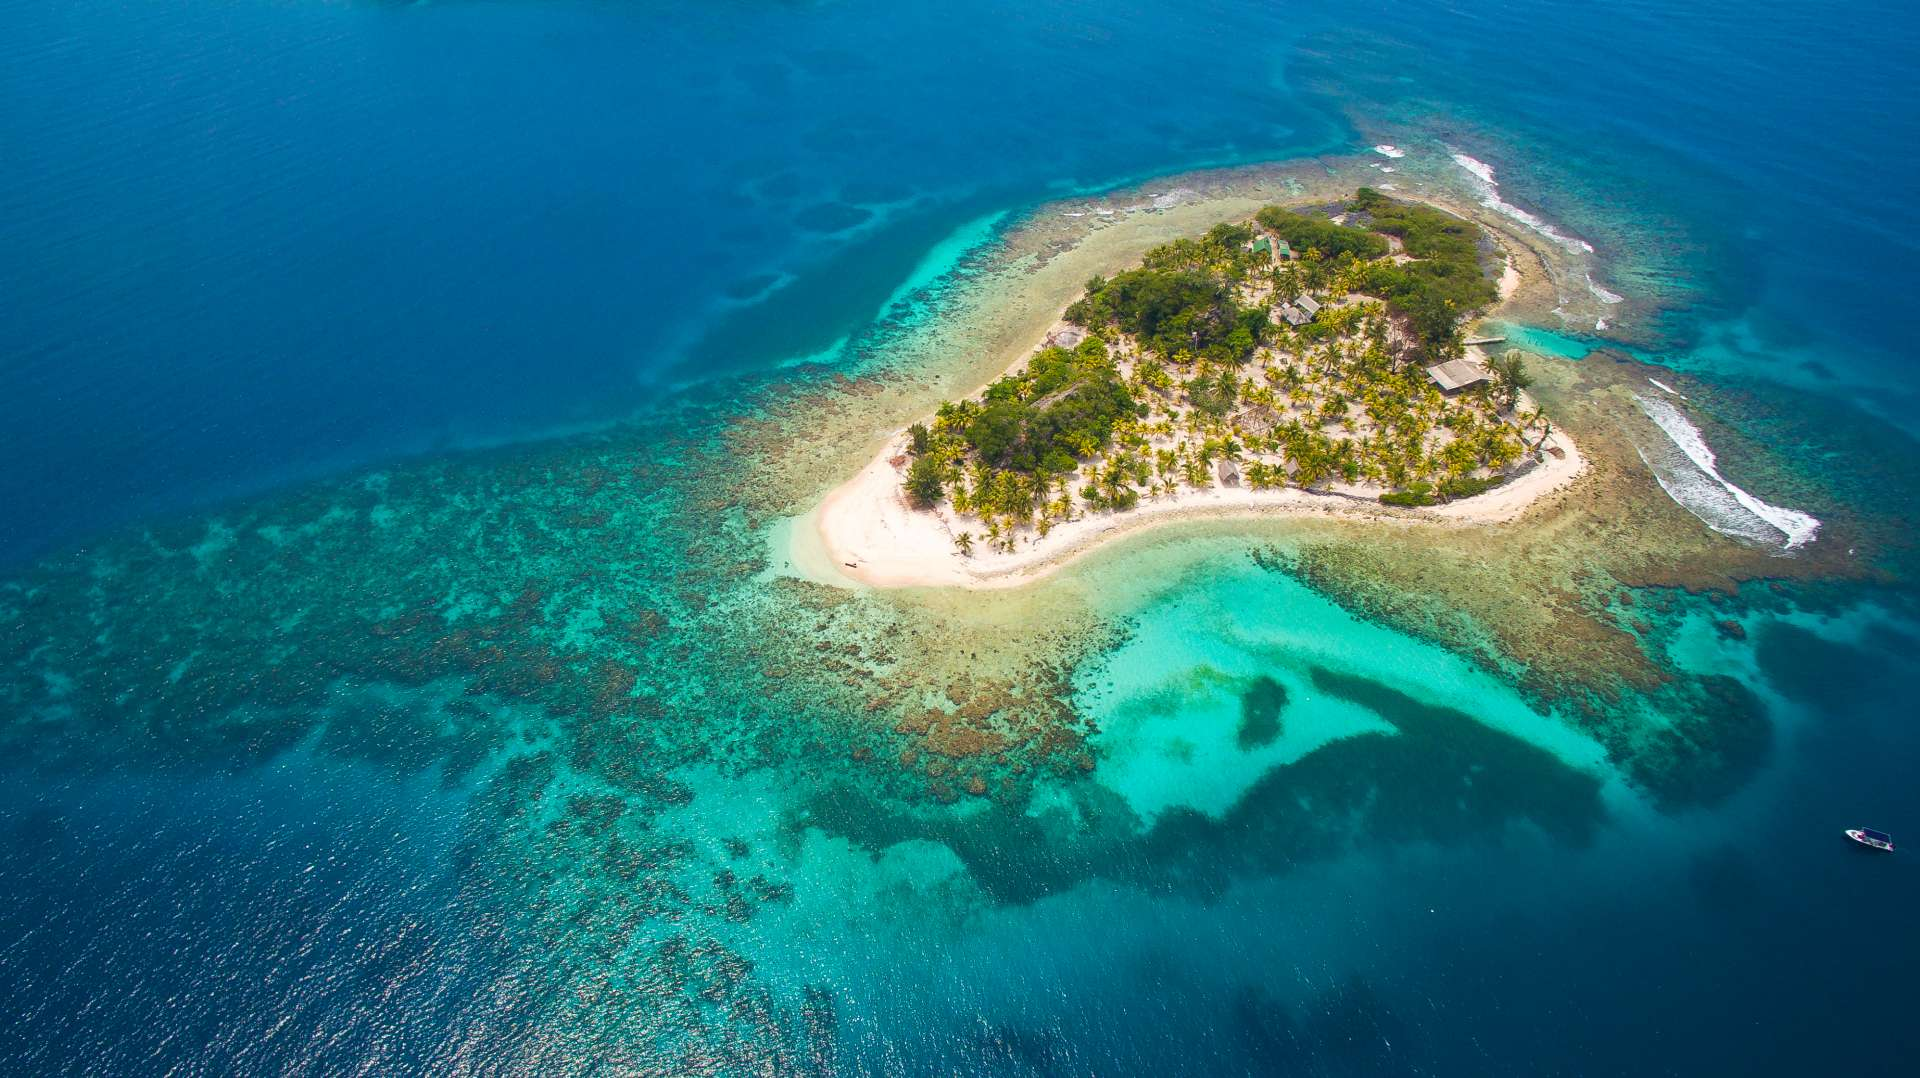 Private Islands Inc - Islands for Sale and Rent